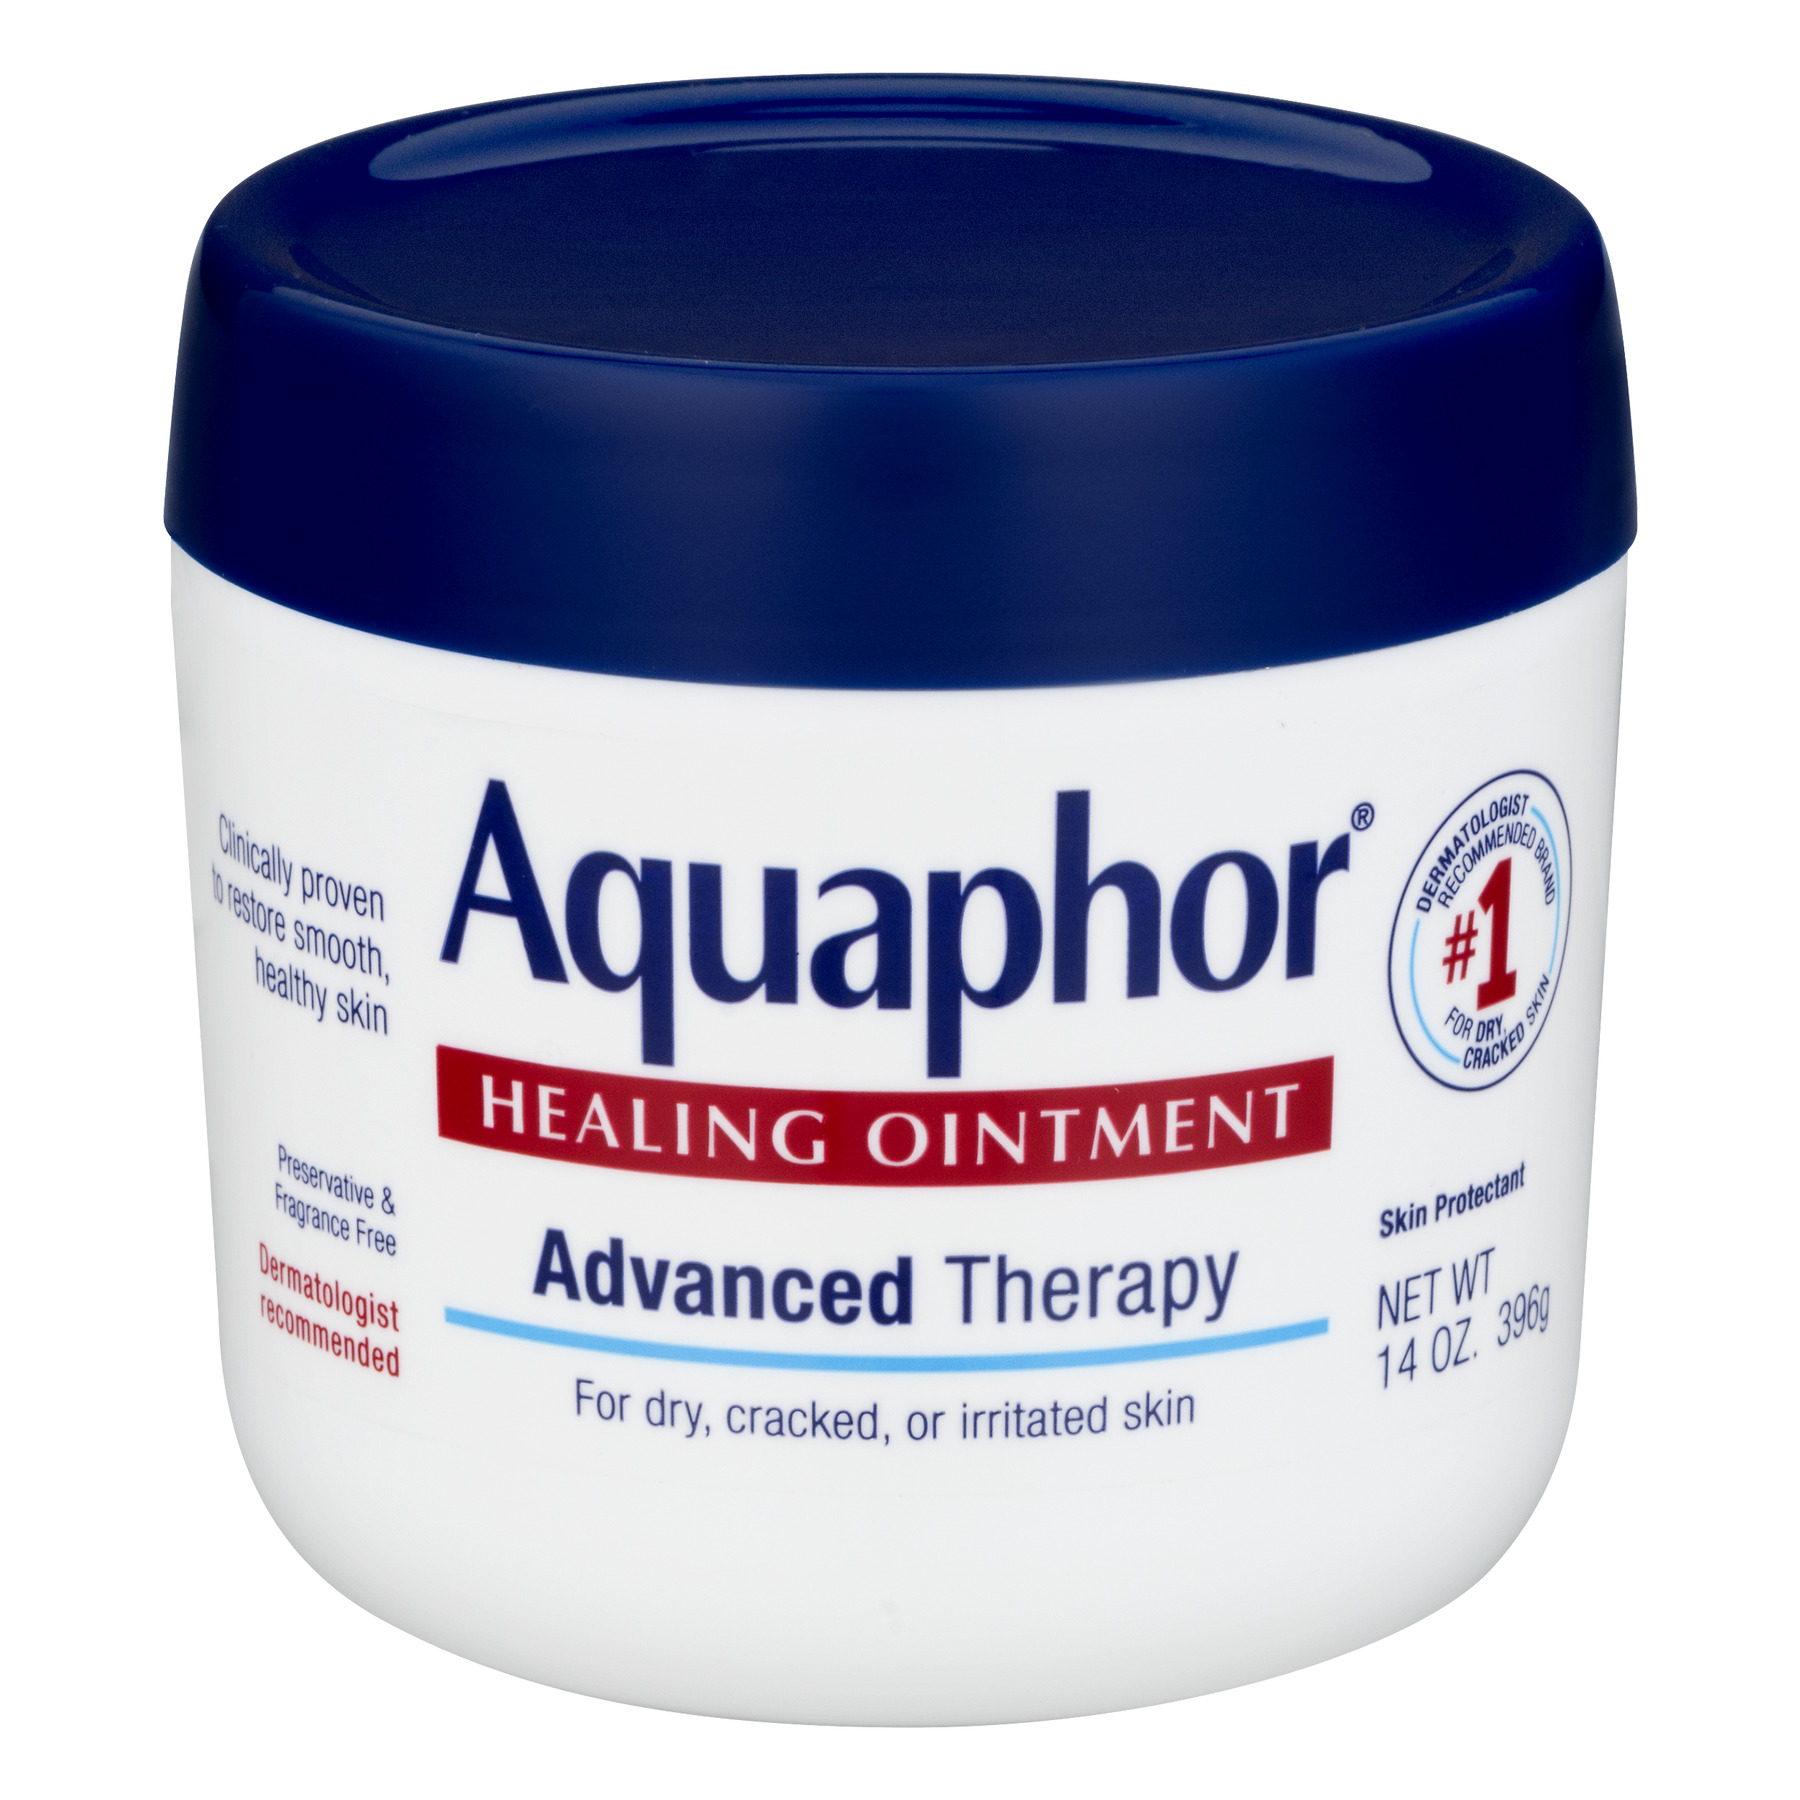 Aquaphor Advanced Therapy Healing Ointment Skin Protectant 14 oz. Jar